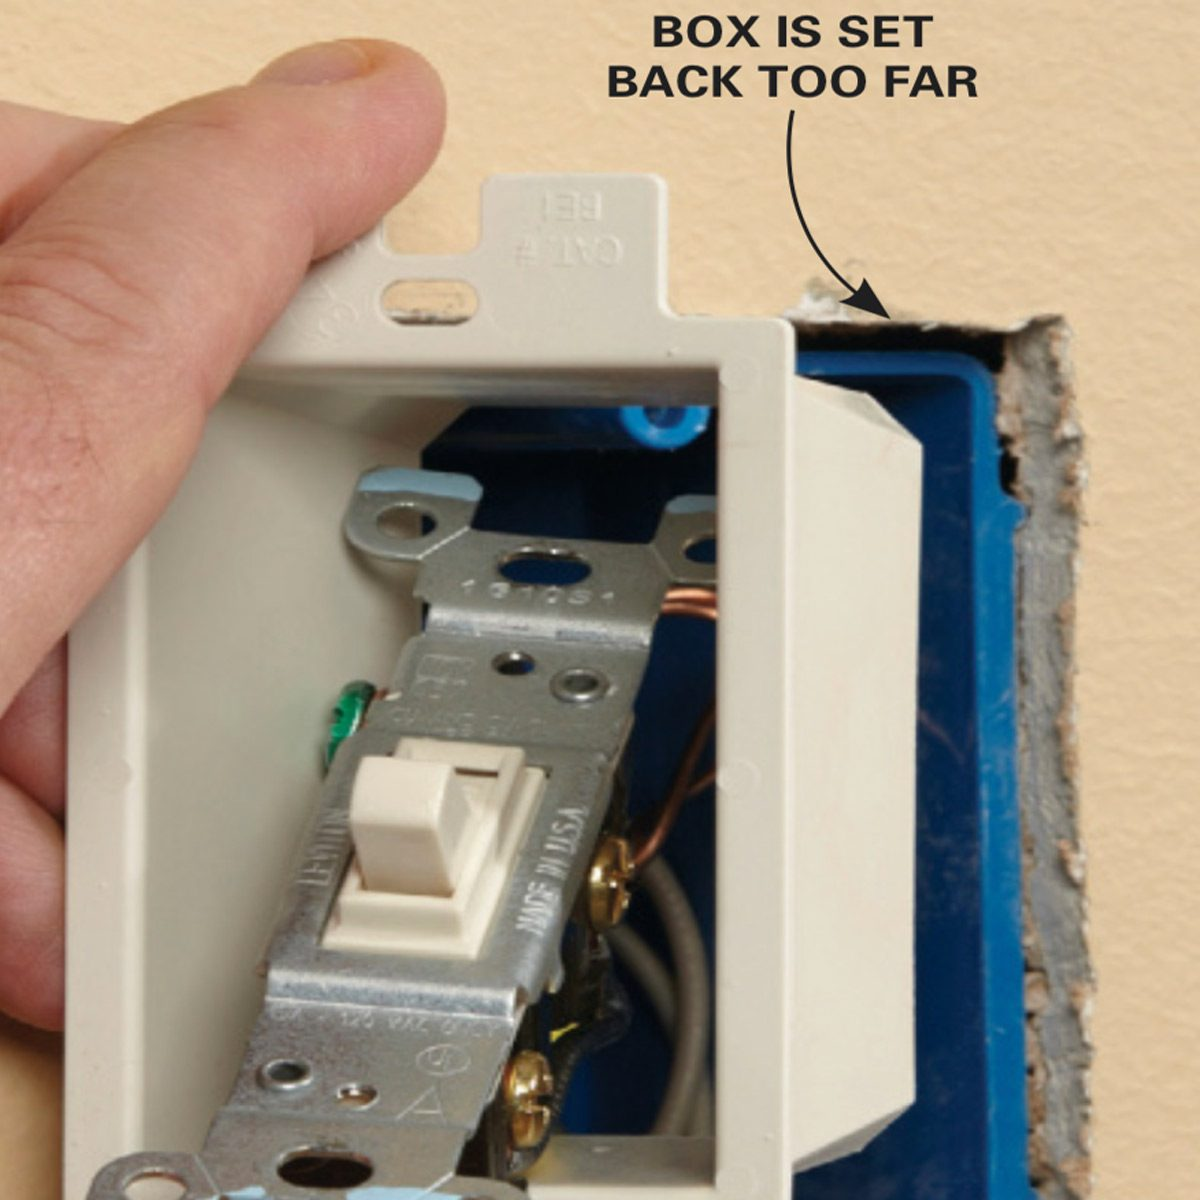 Outlet Insulation Stops Cold Air Coming Through Electrical Outlets Also Wiring A Light Switch And Gfci As Well Gfi Unscrew The Or Receptacle Twist It At An Angle Then Slide Box Extender Over Device Into Wall Remount Straighten